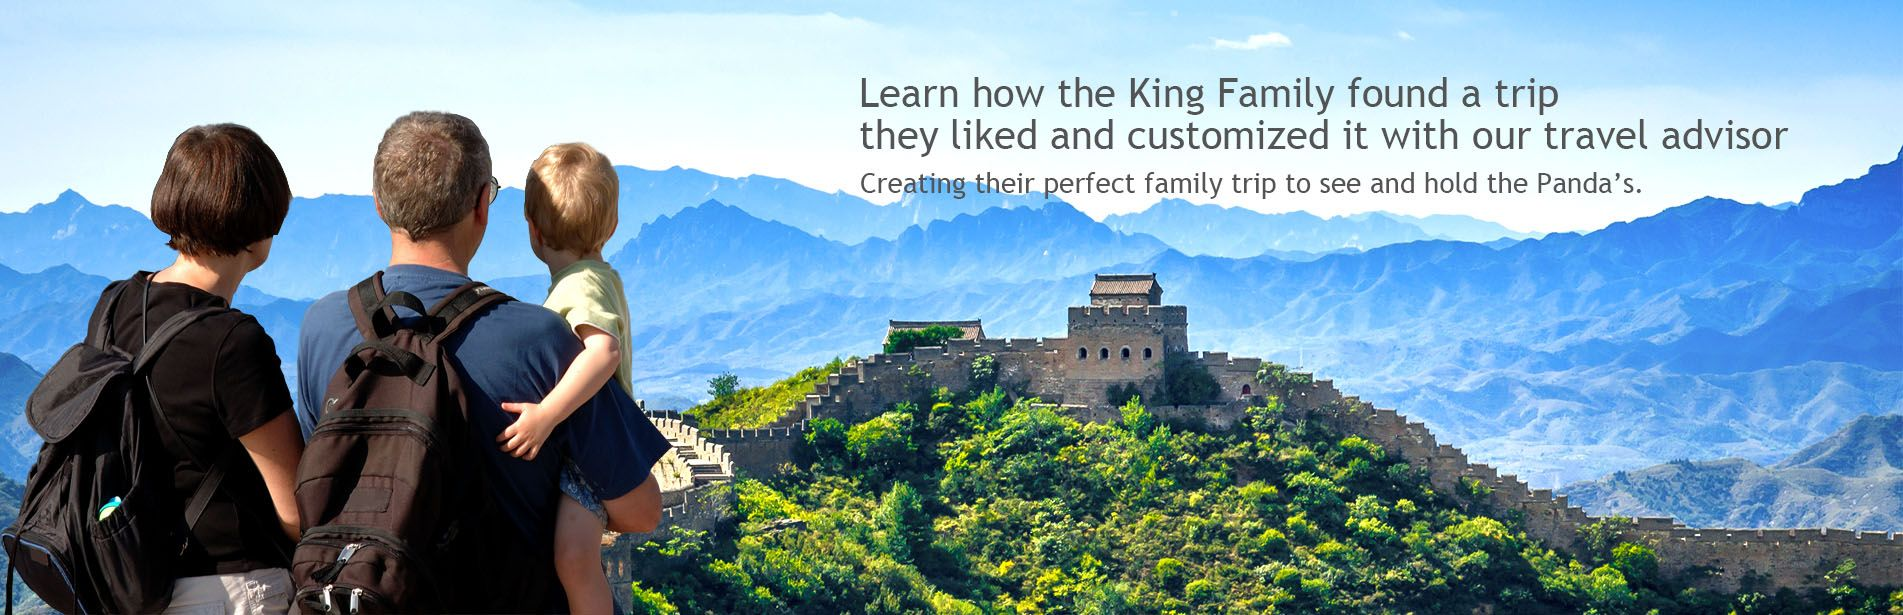 Learn how the King Family found a trip they liked